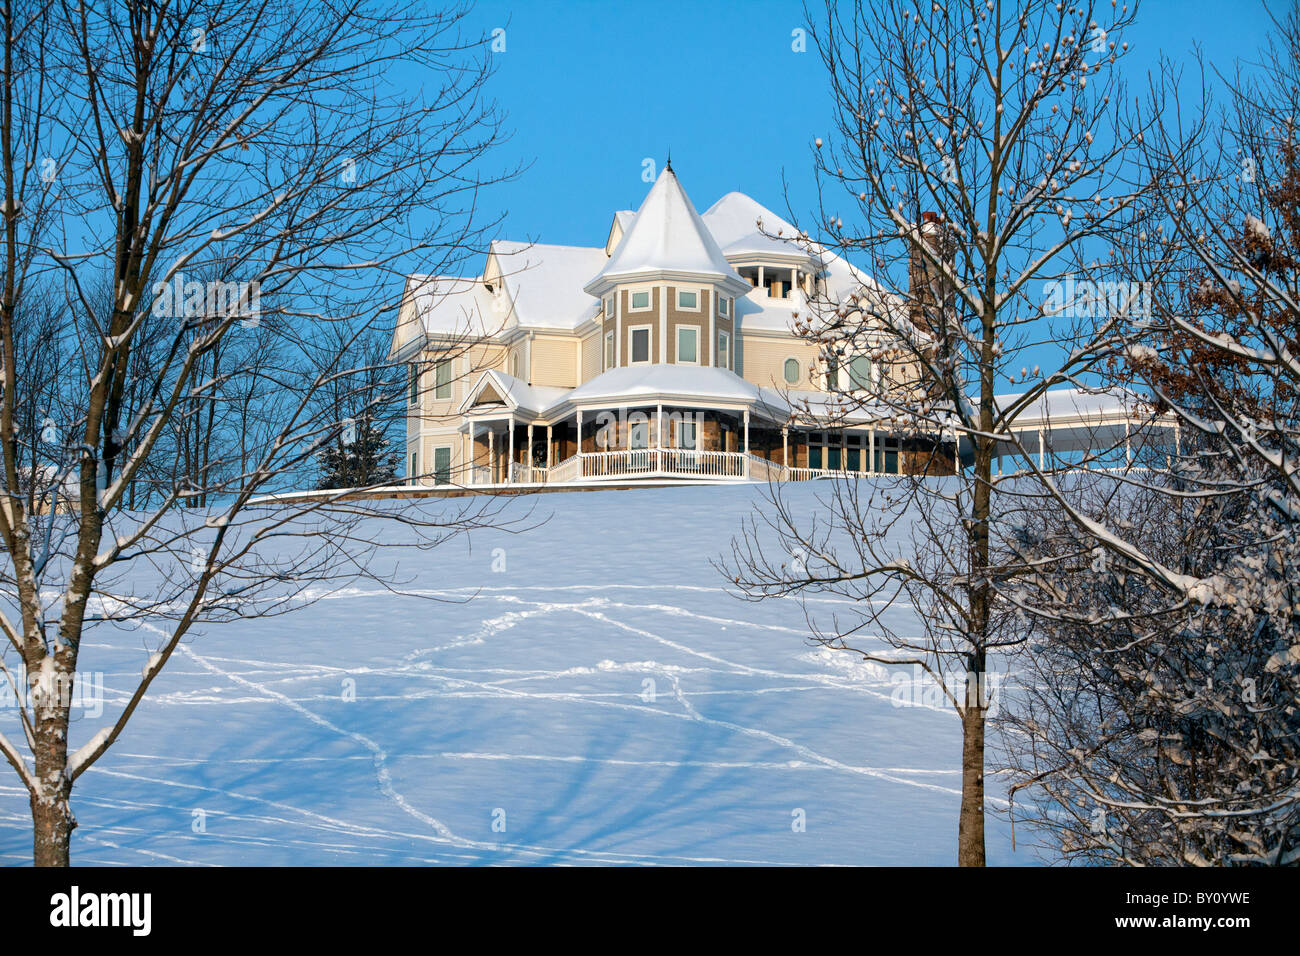 A Modern Victorian Style House On Snow Covered Hill